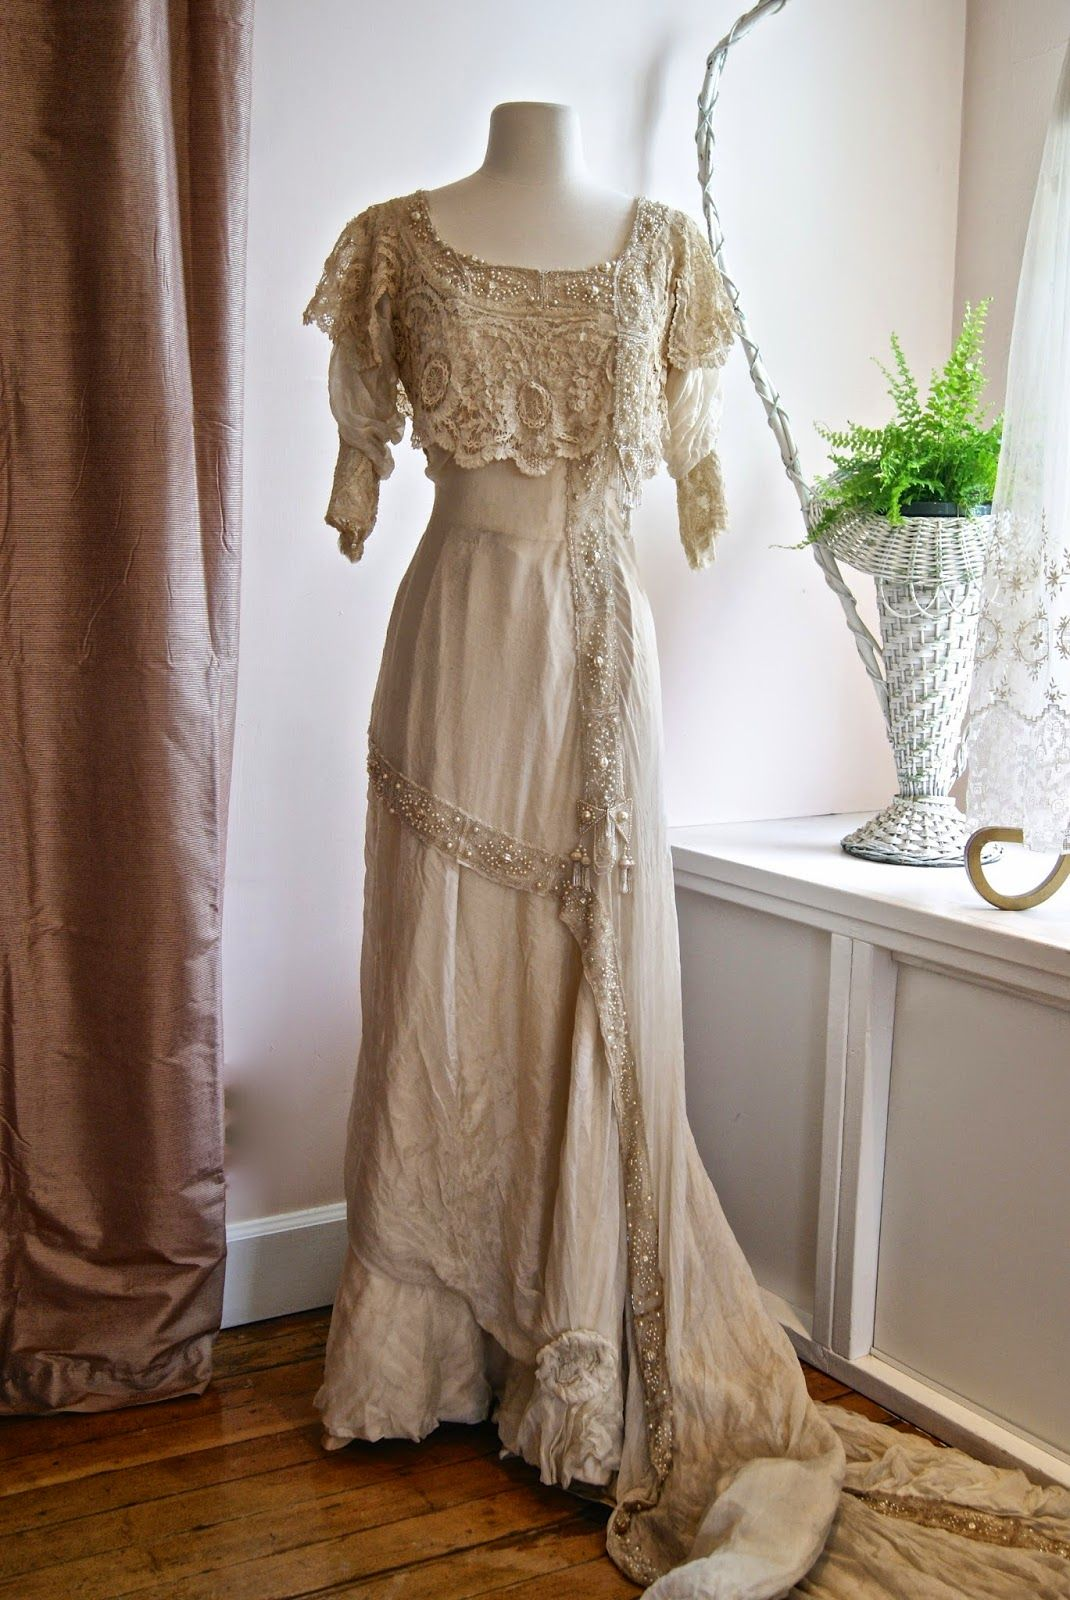 Xtabay vintage clothing boutique portland oregon dresses vintage wedding dress xtabay vintage clothing boutique portland oregon love it id take the sleeves off ombrellifo Gallery